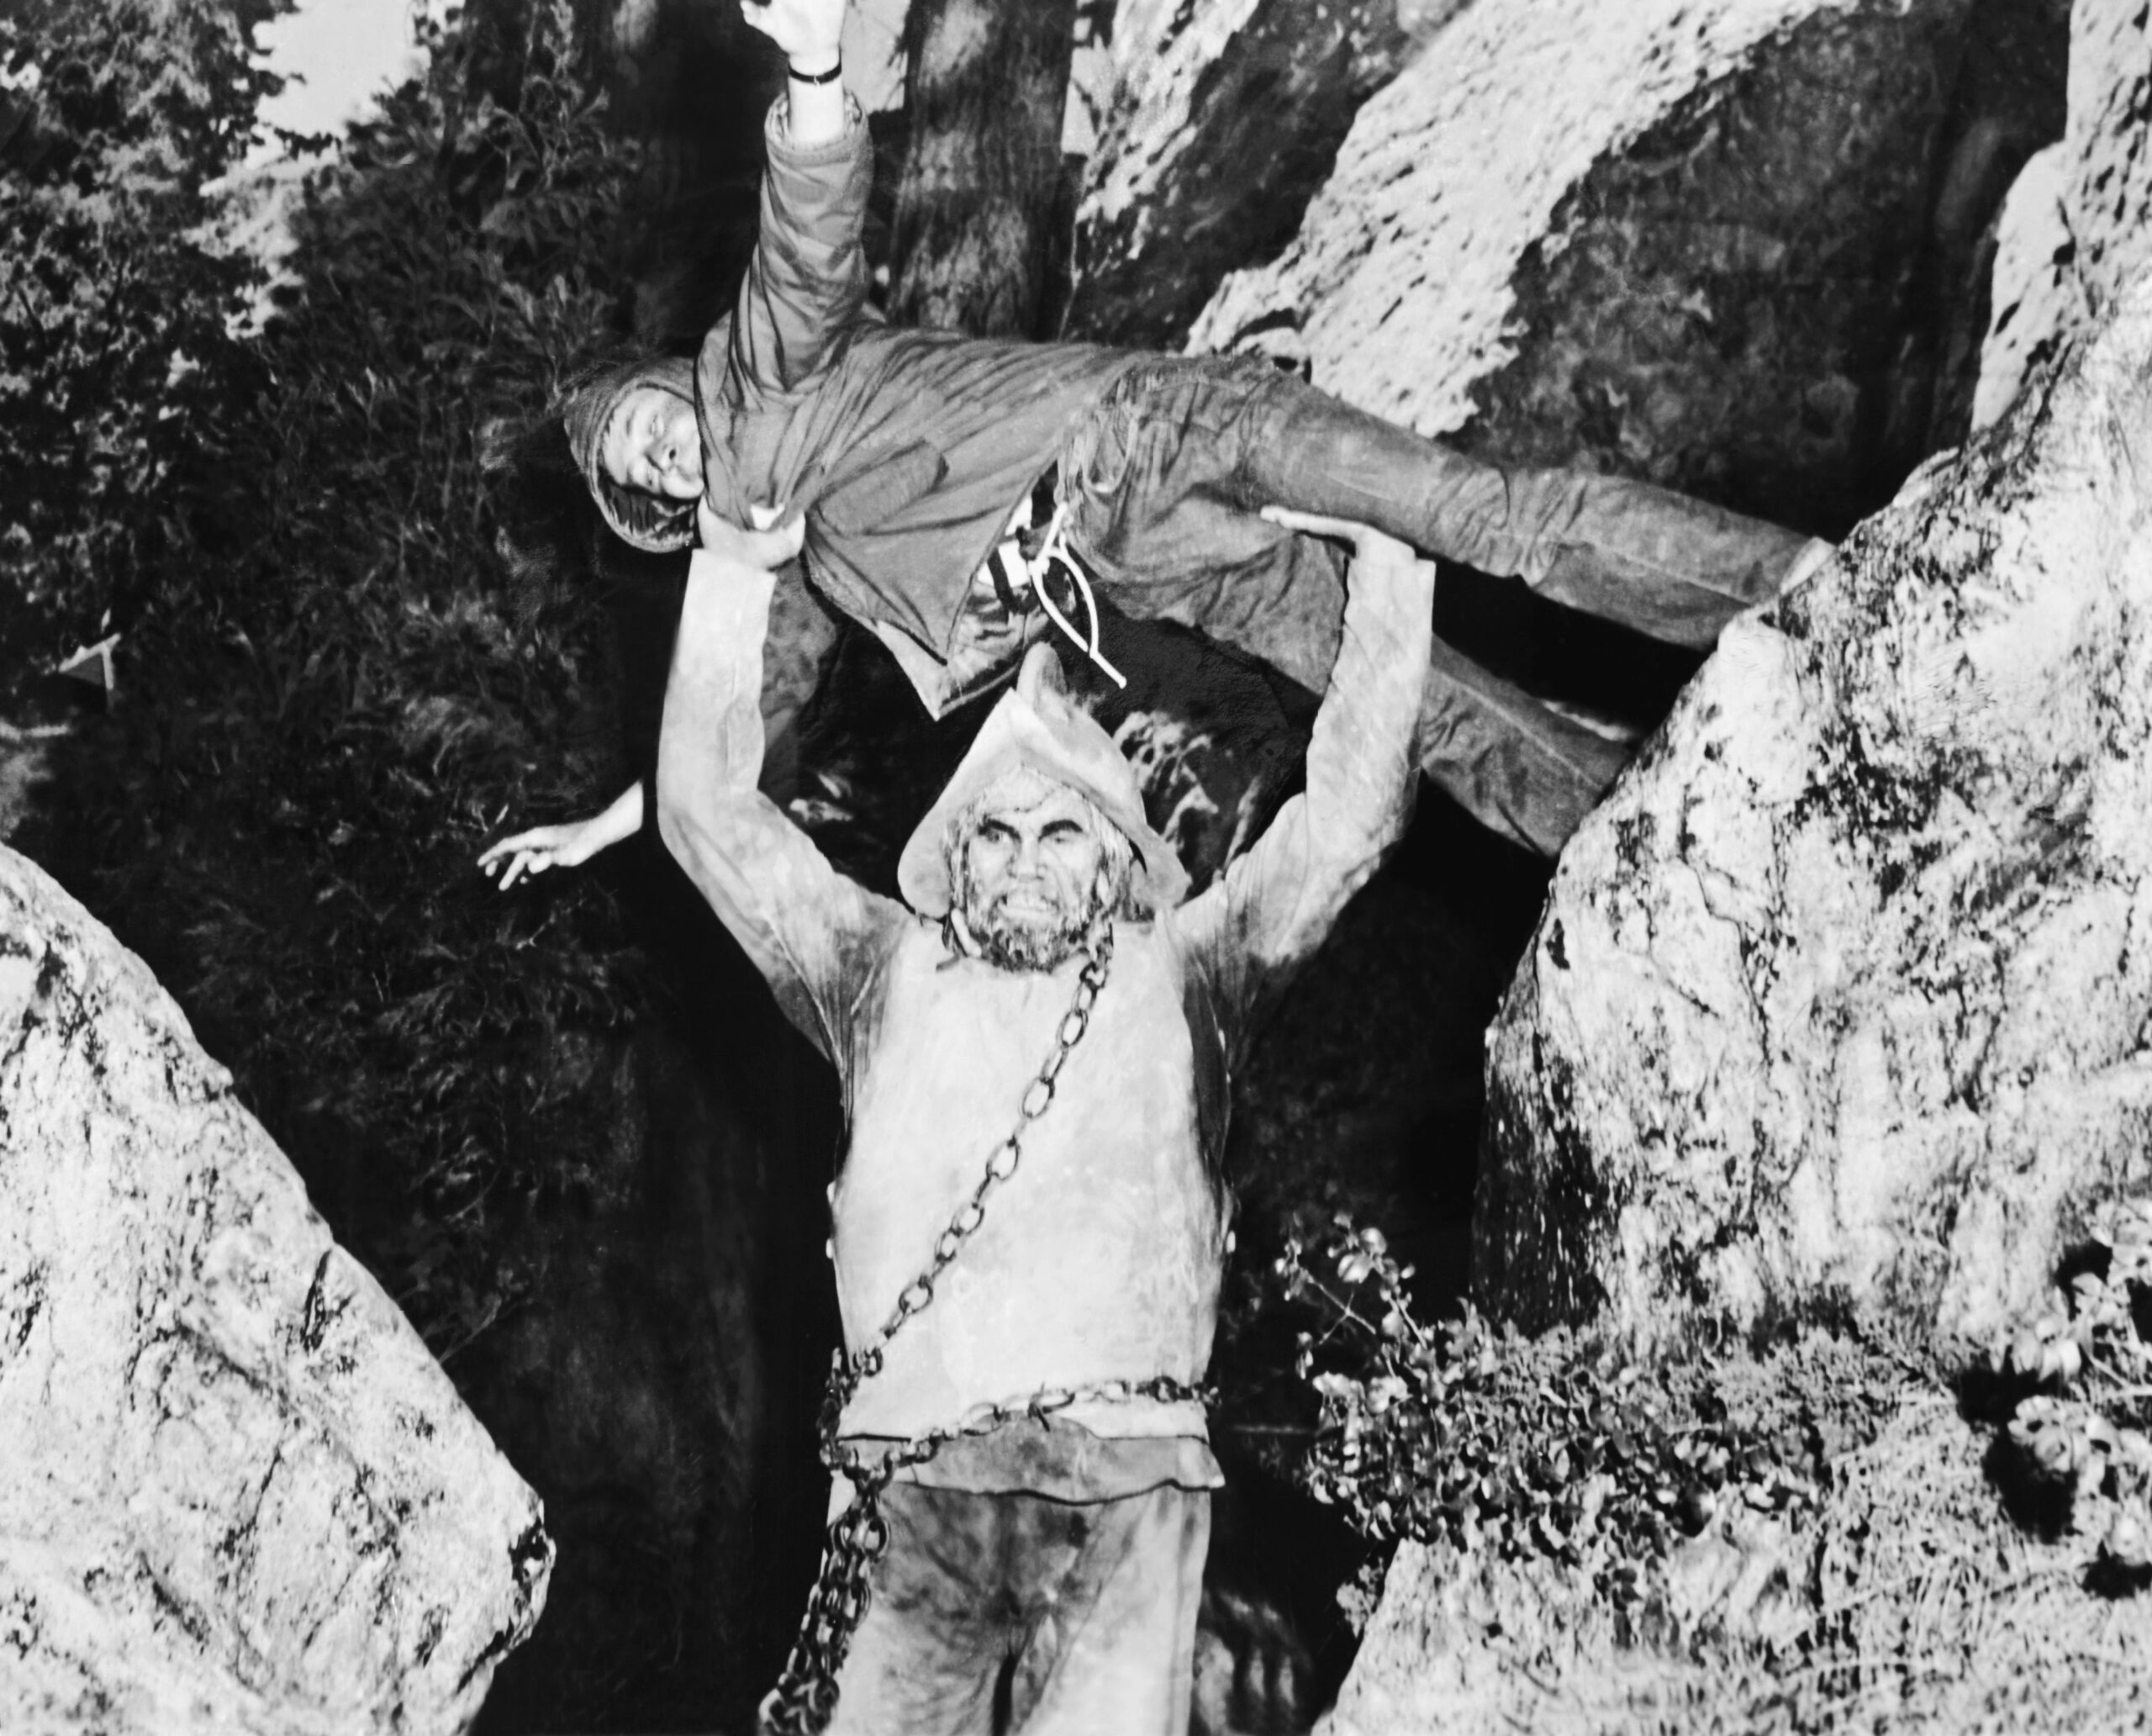 GIANT FROM THE UNKNOWN, Buddy Baer (bottom), 1958